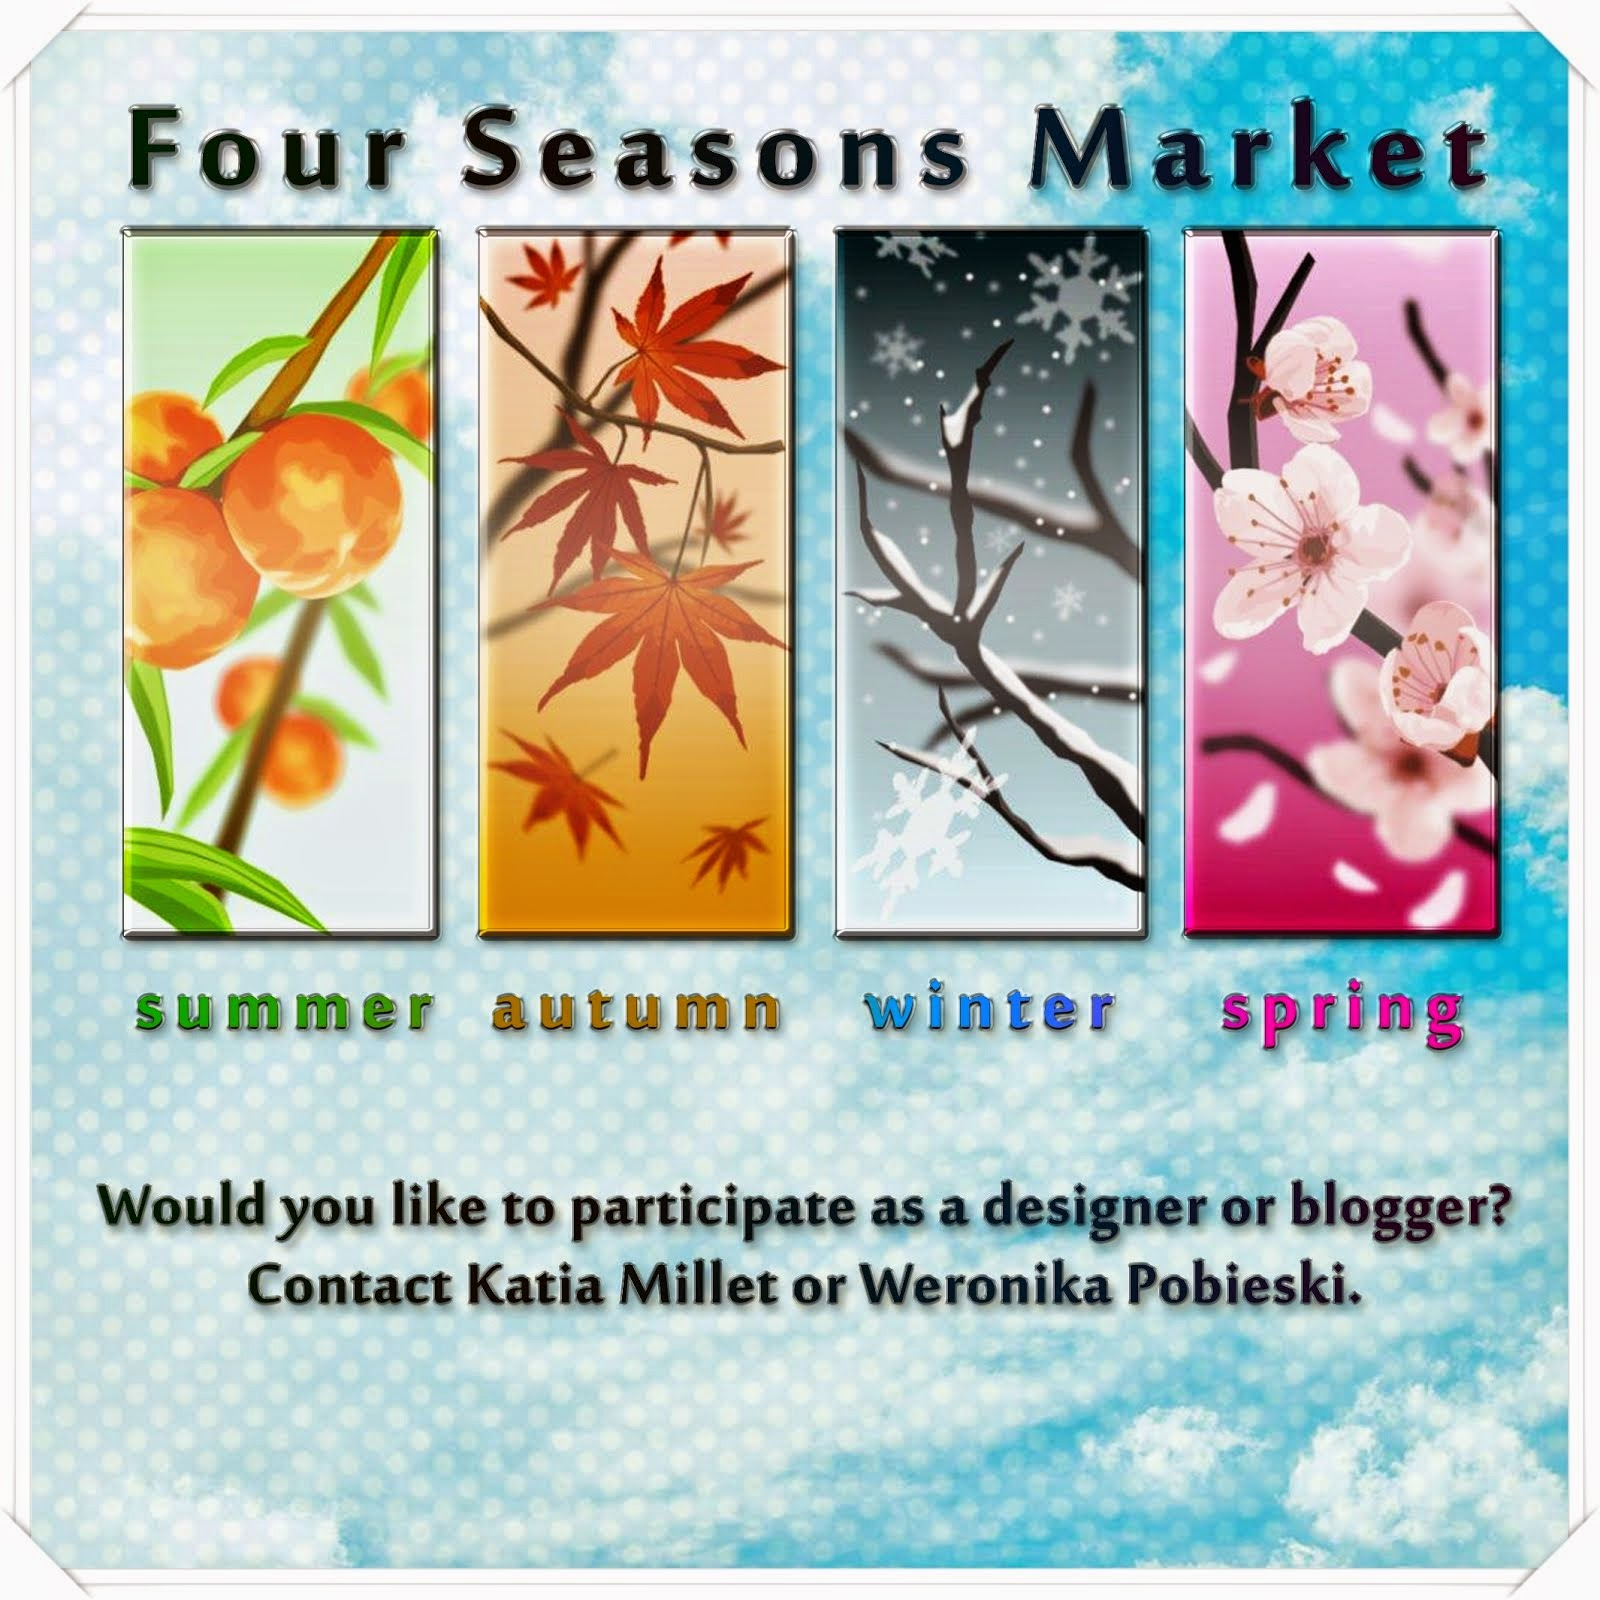 Four Seasons Market